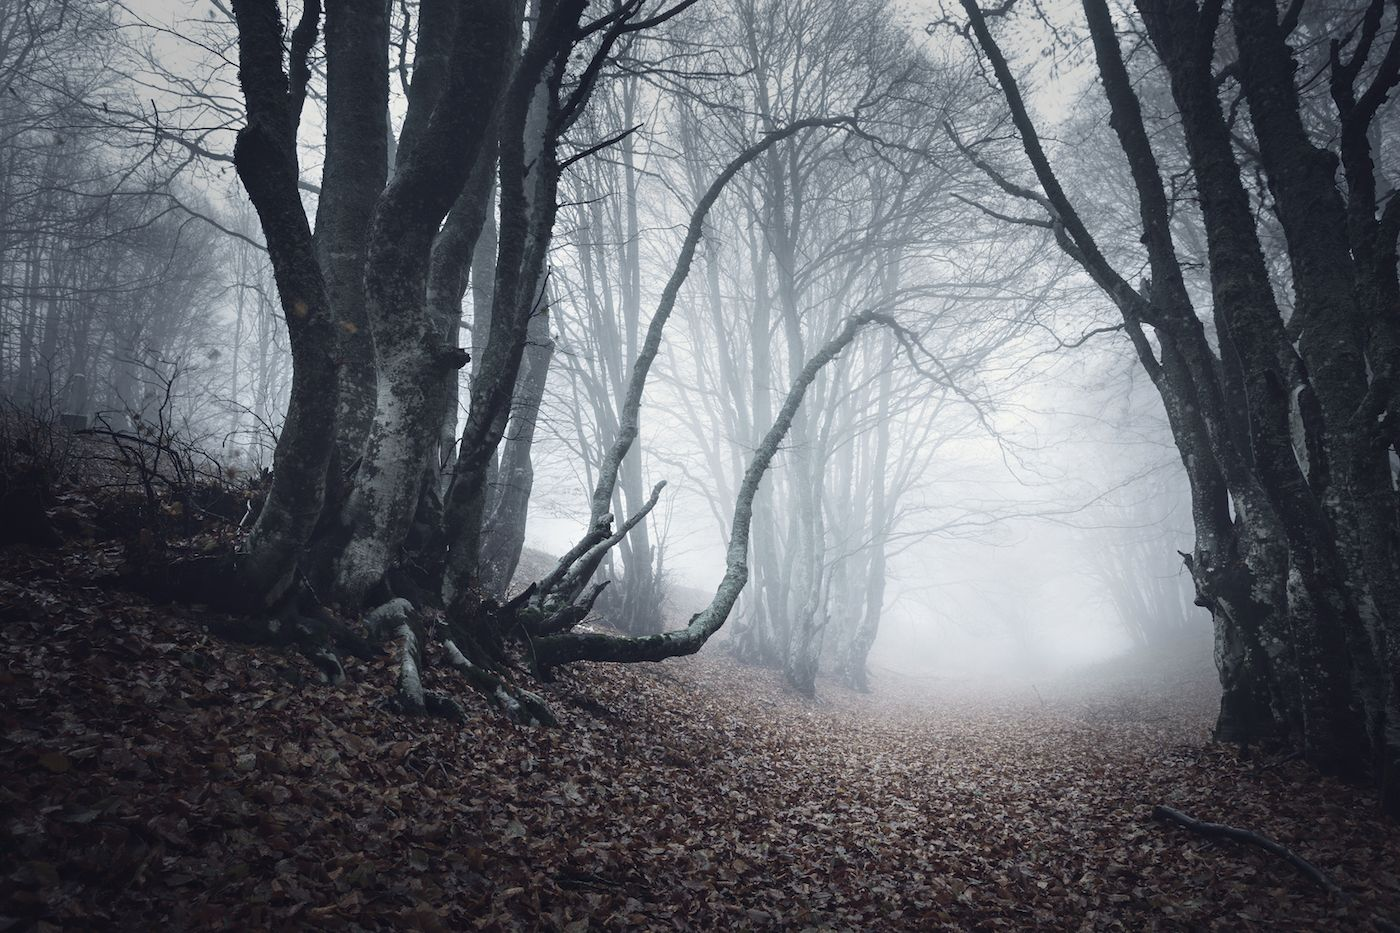 What Long Island haunted adventures will this season bring and…will we crack?